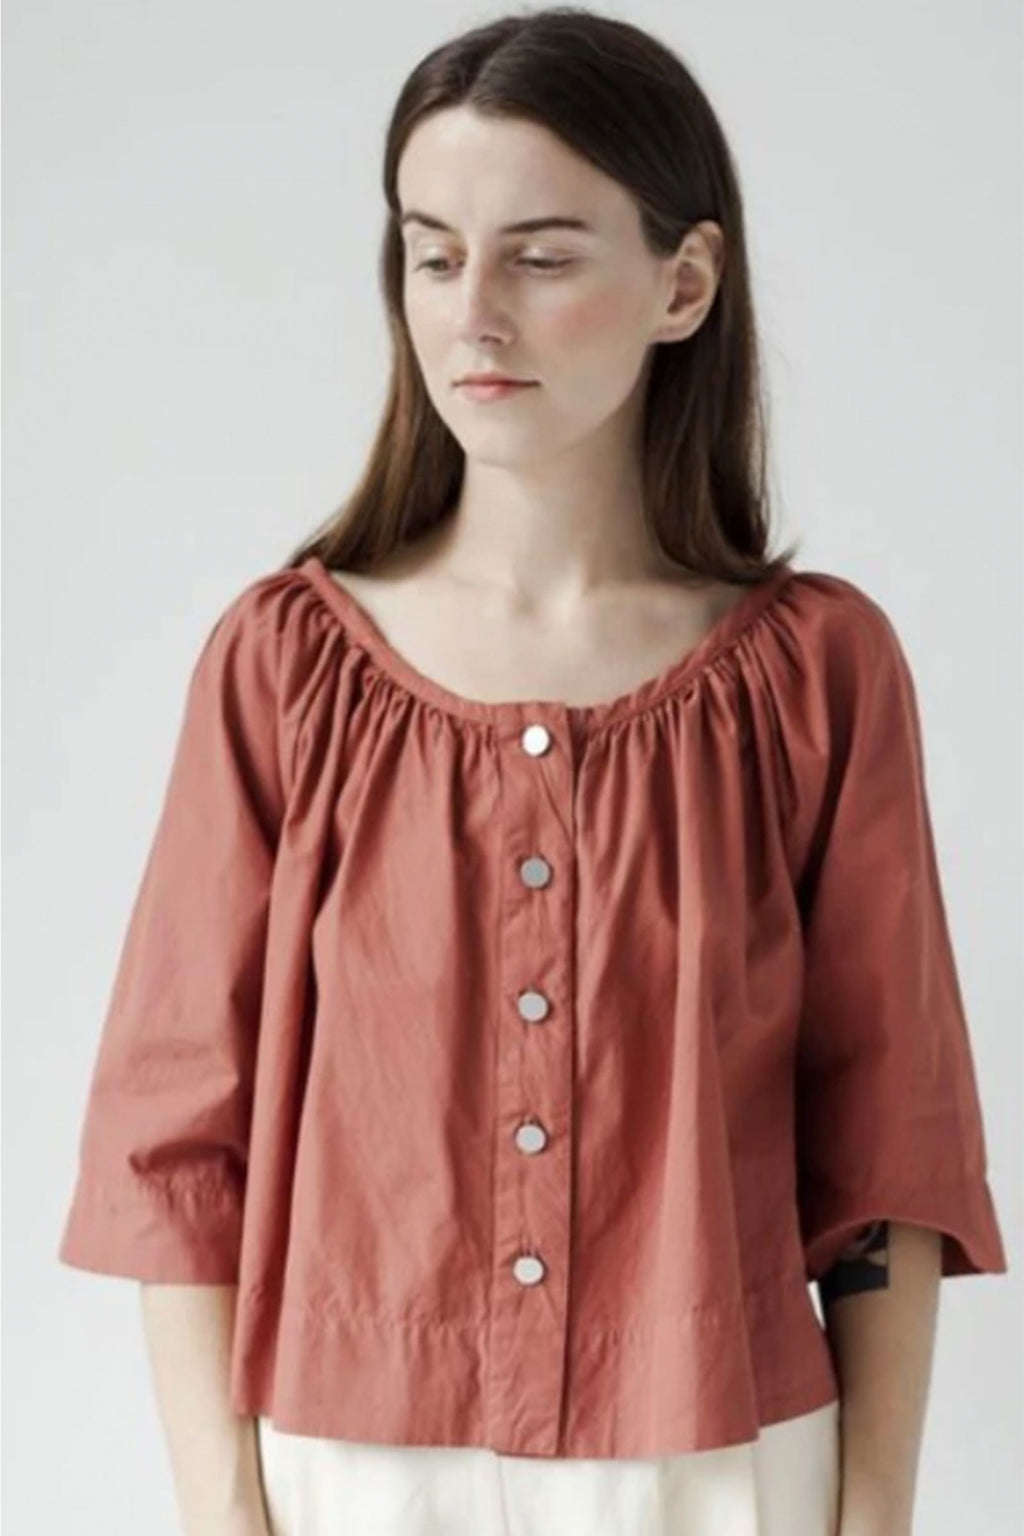 Atelier Delphine Millie Blouse in Bordeaux Poplin